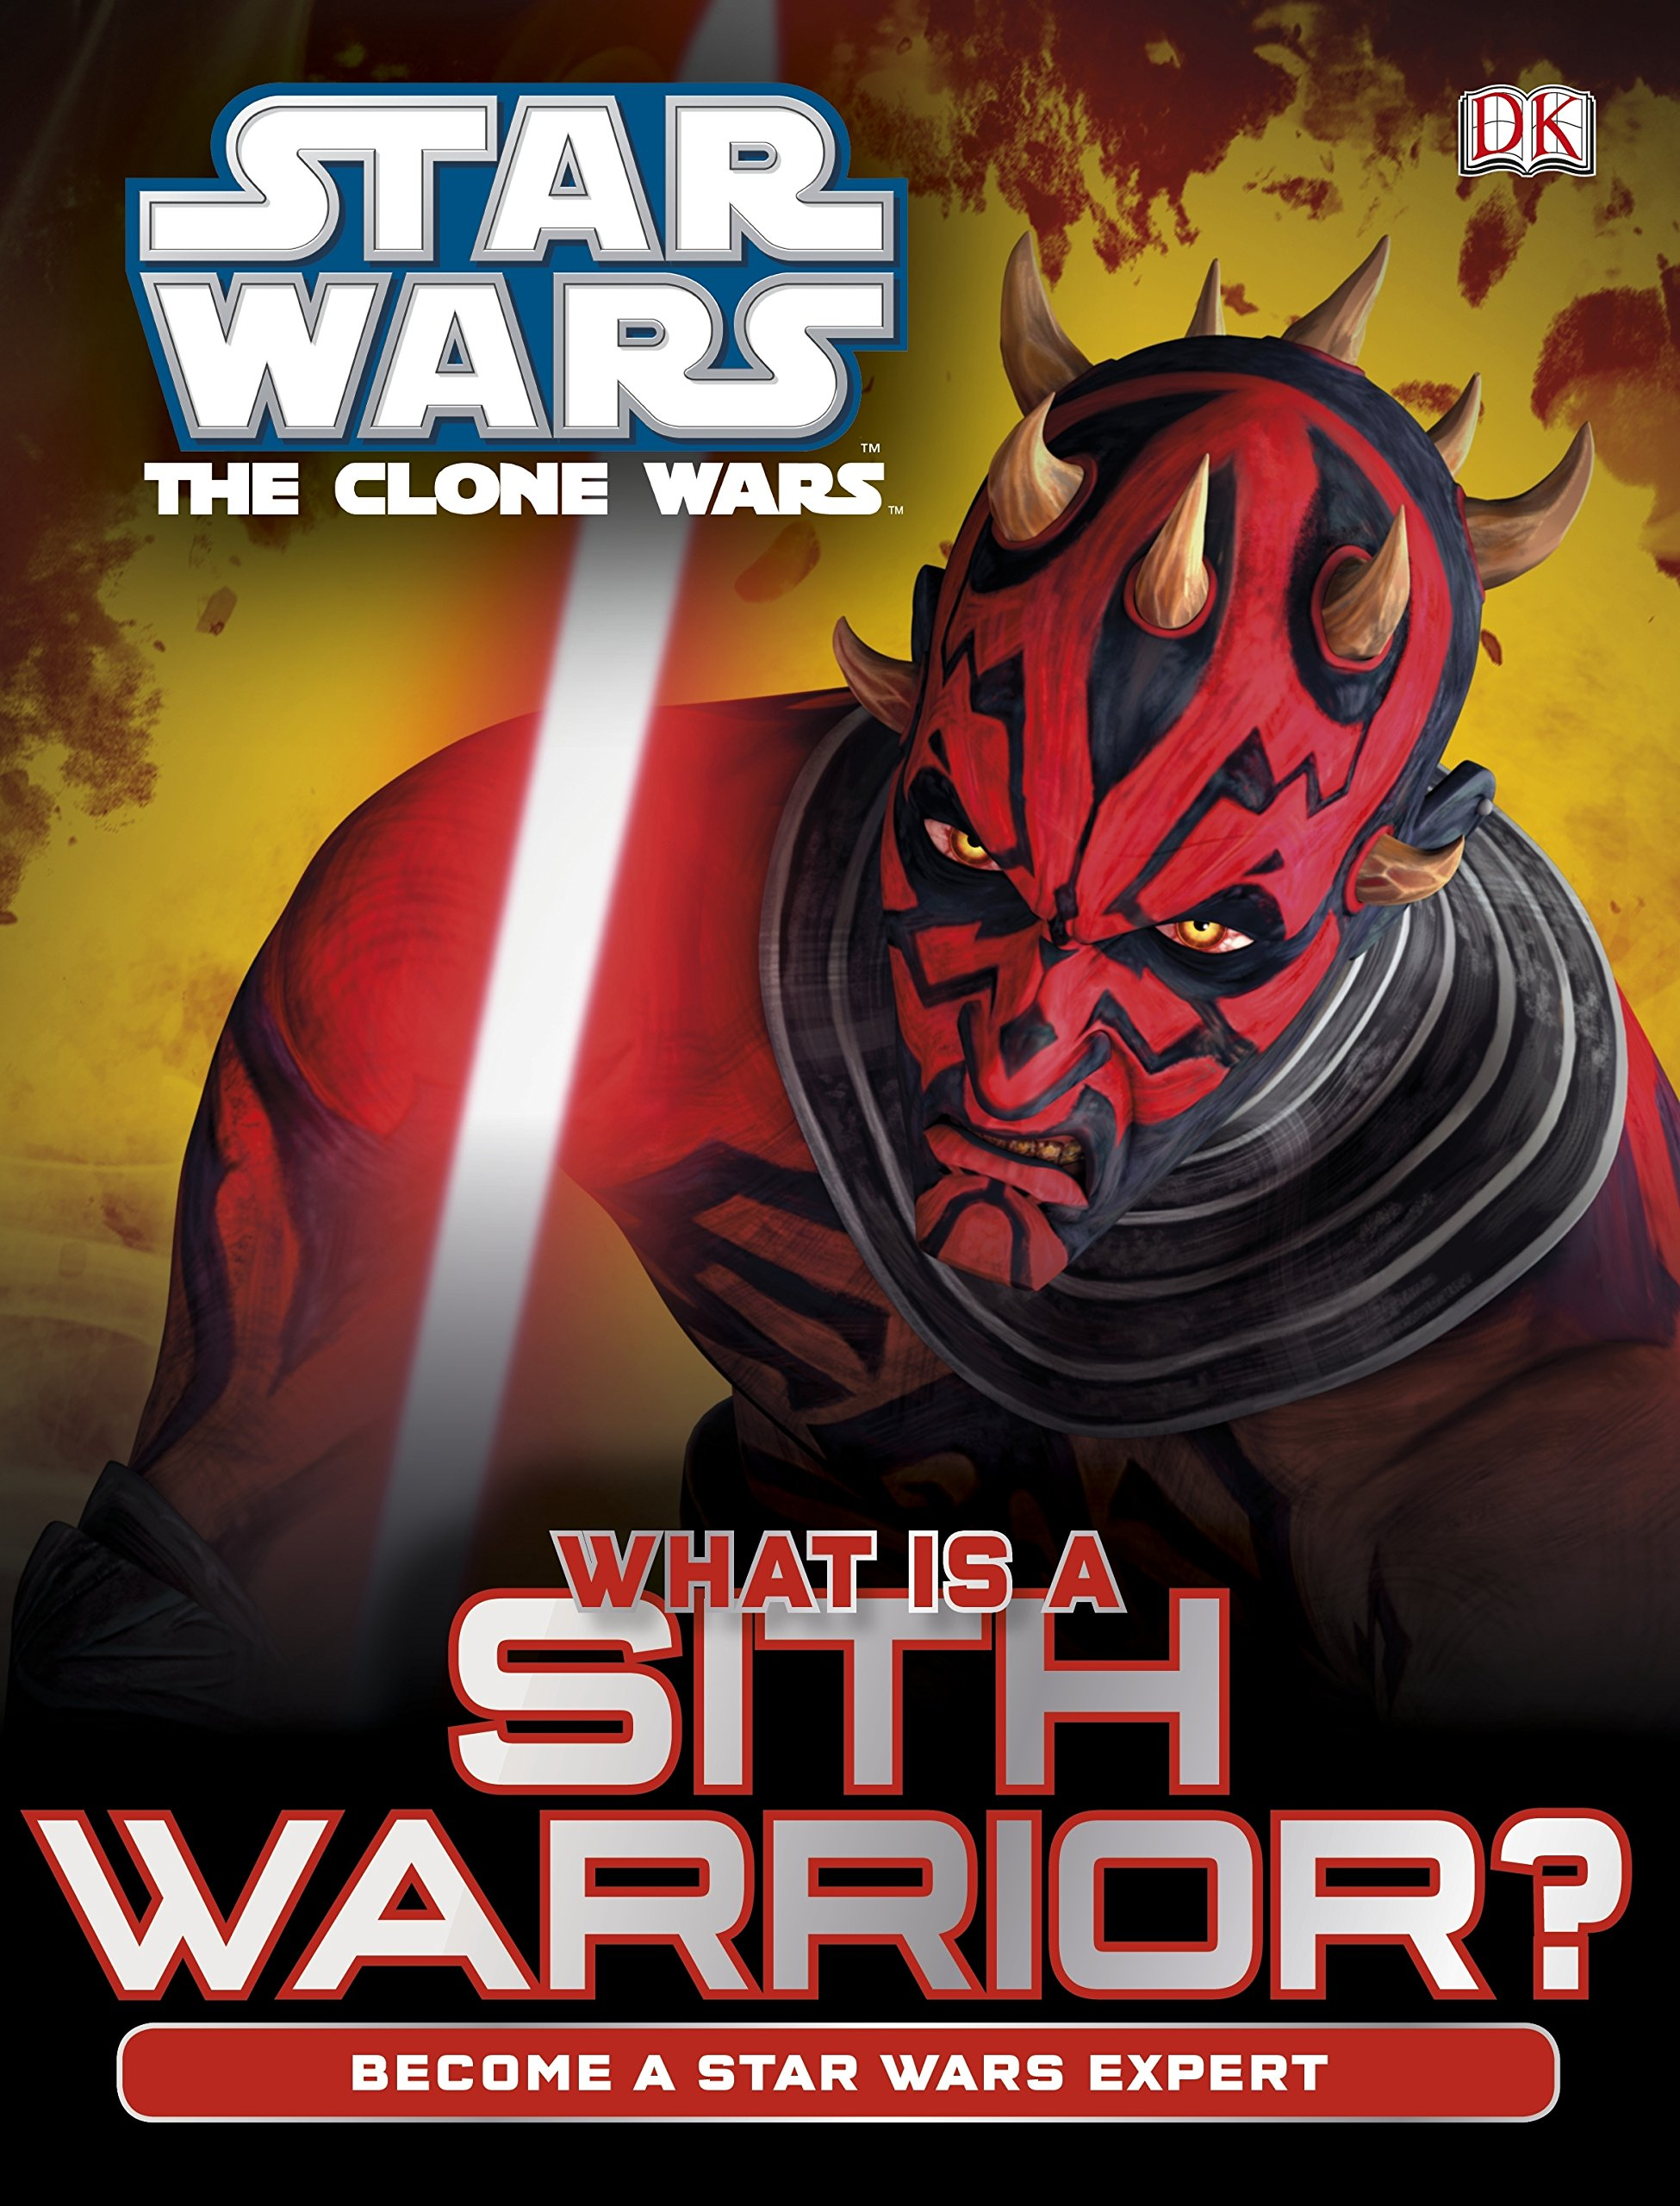 Star Wars The Clone Wars: What is a Sith Warrior?